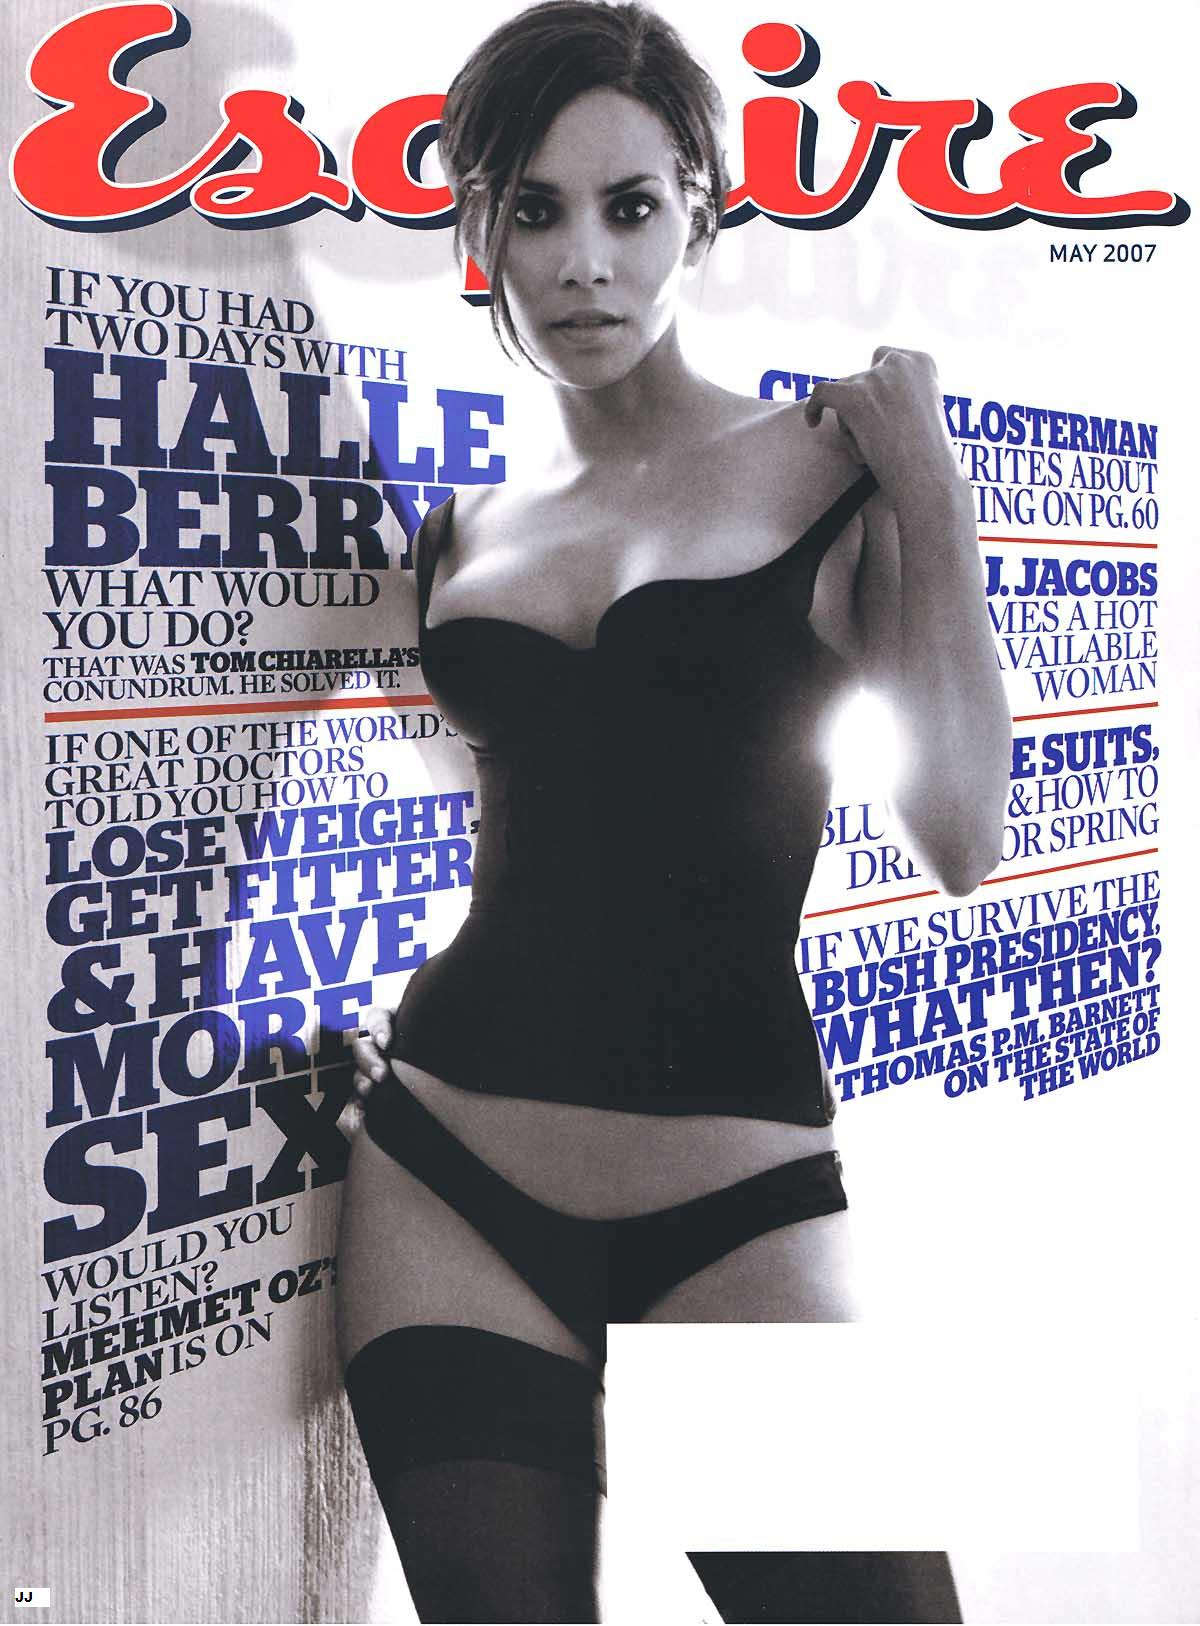 38177_Halle_Berry_Esquire_May_2007_01_www.hqparadise.hu_123_247lo.jpg